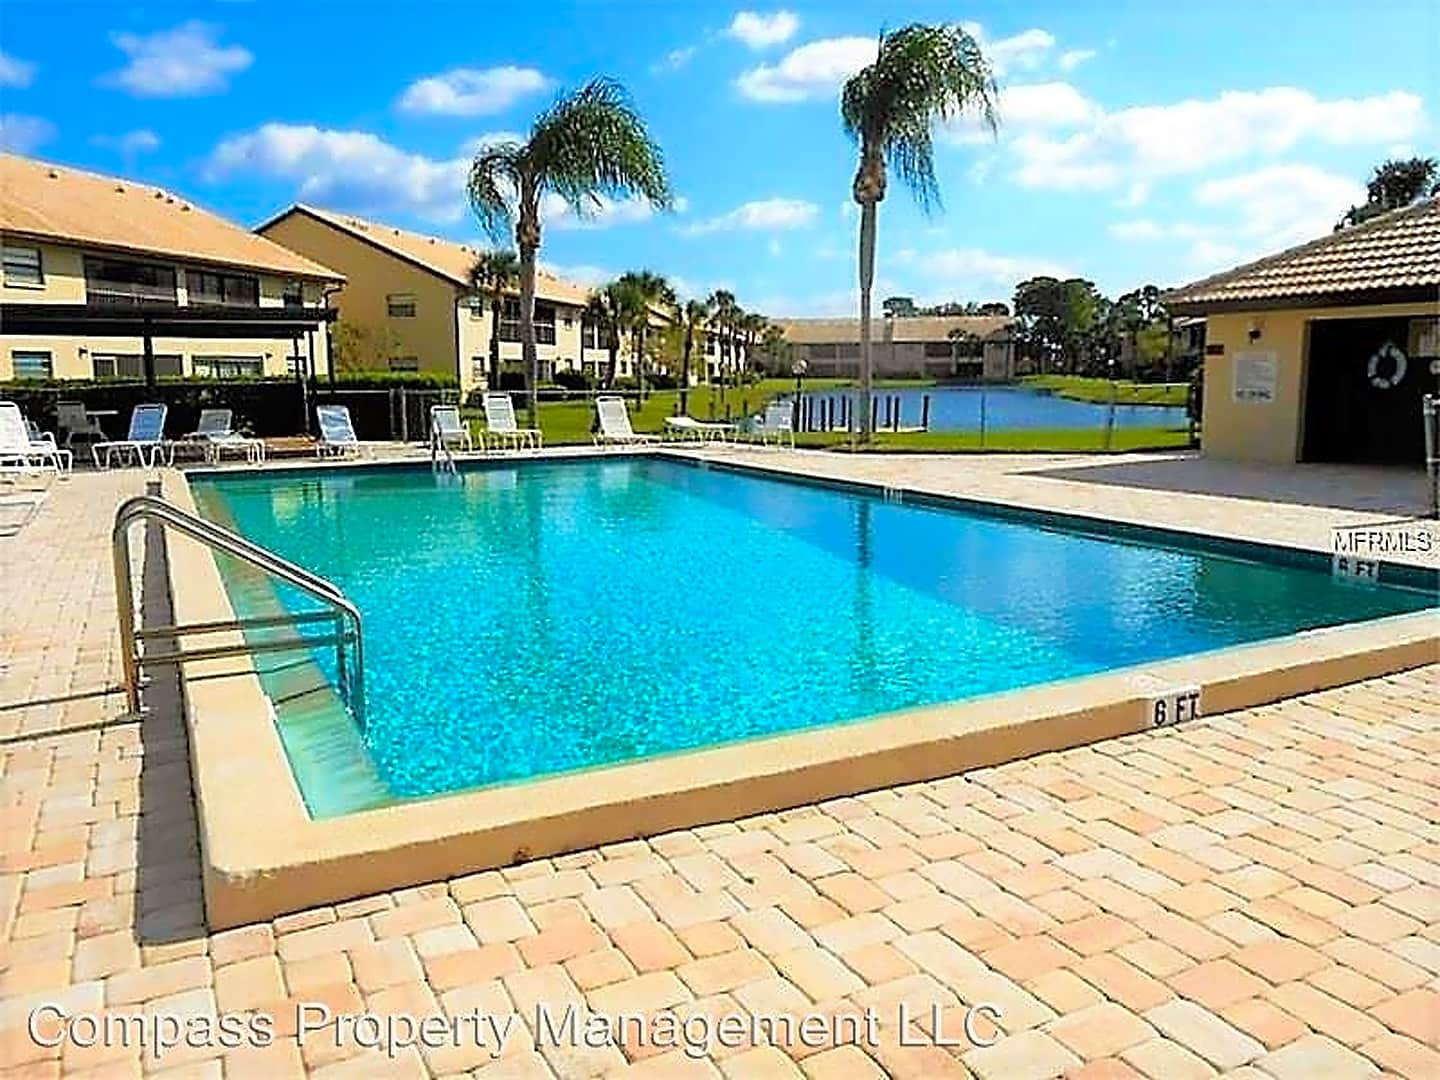 310 mission trail north apartments venice fl 34285 for Apartment design guide sepp 65